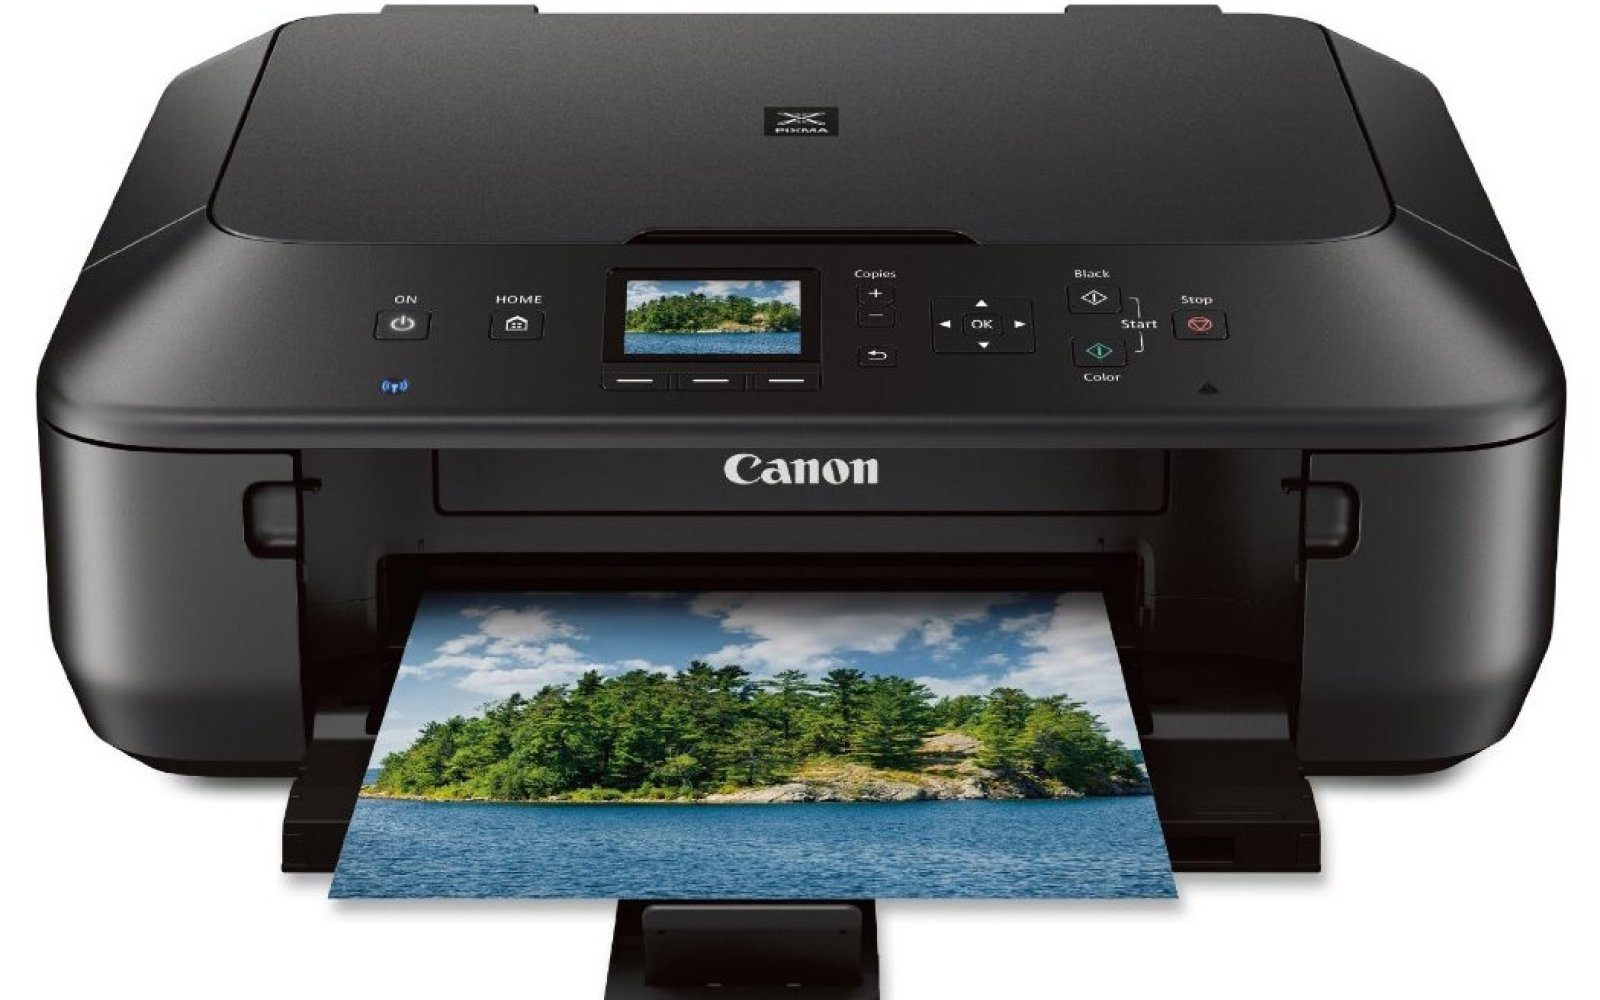 Canon PIXMA Wireless All-In-One Color Photo Printer w/ AirPrint $45 shipped (orig. $150)